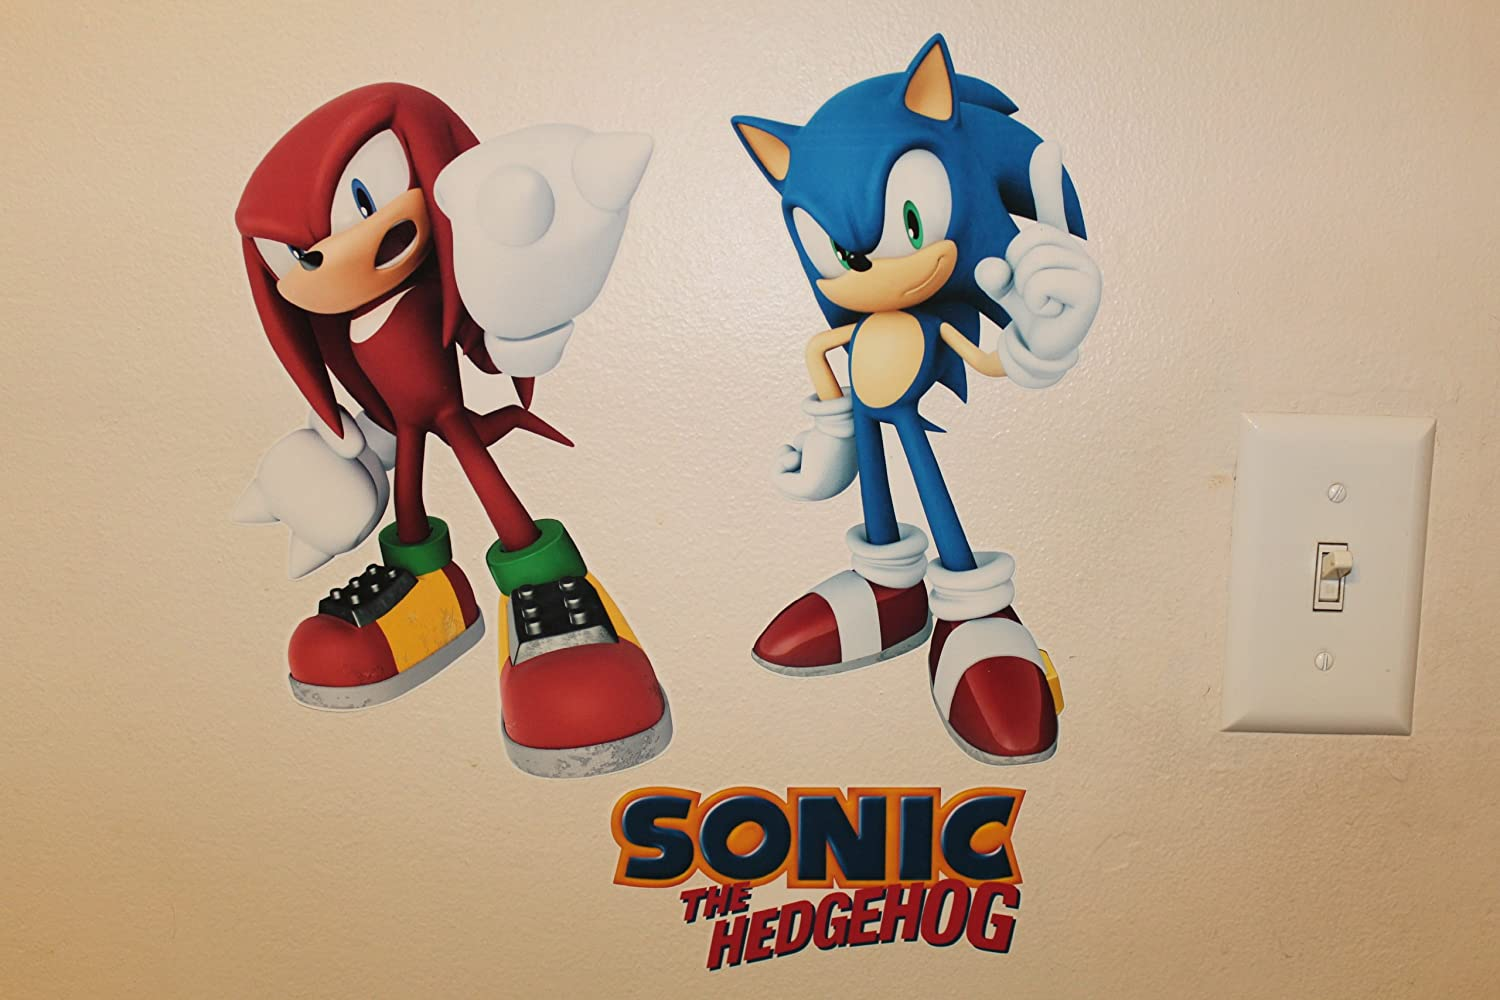 Sonic Bedroom Decor Sonic The Hedgehog Tails Knuckles And Shadow Removable Wall